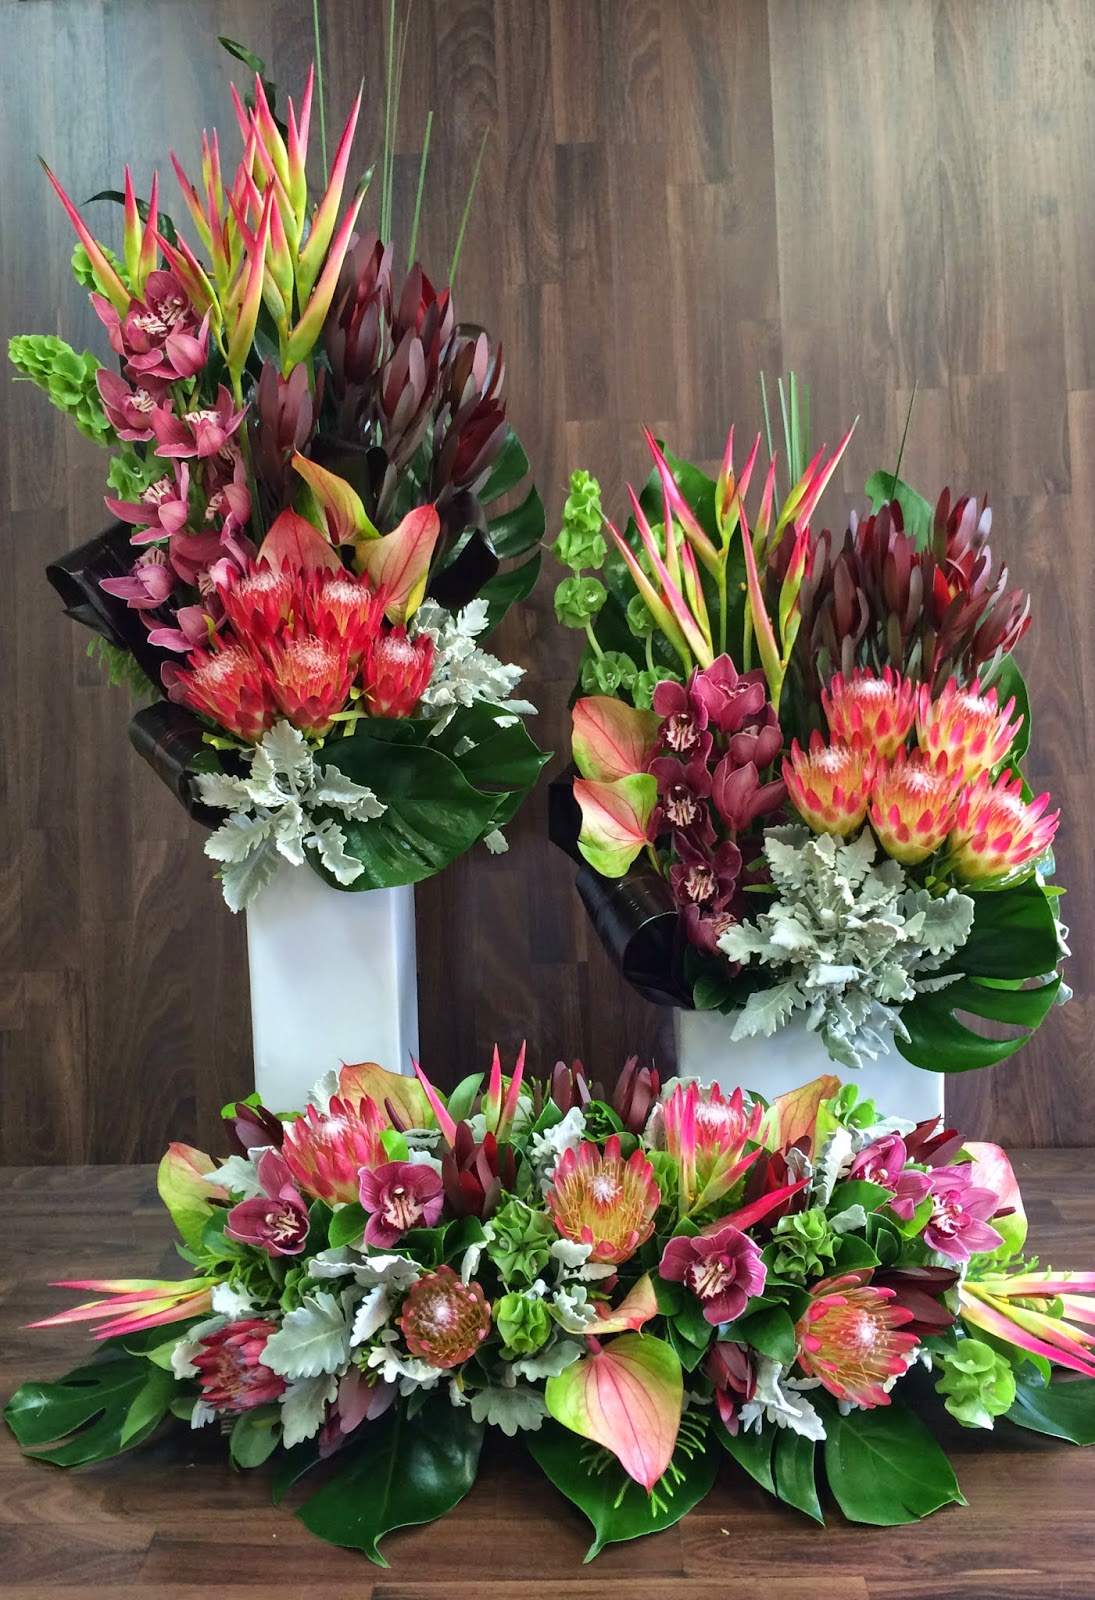 Urban flower australian native flower arrangements for for A arrangement florist flowers